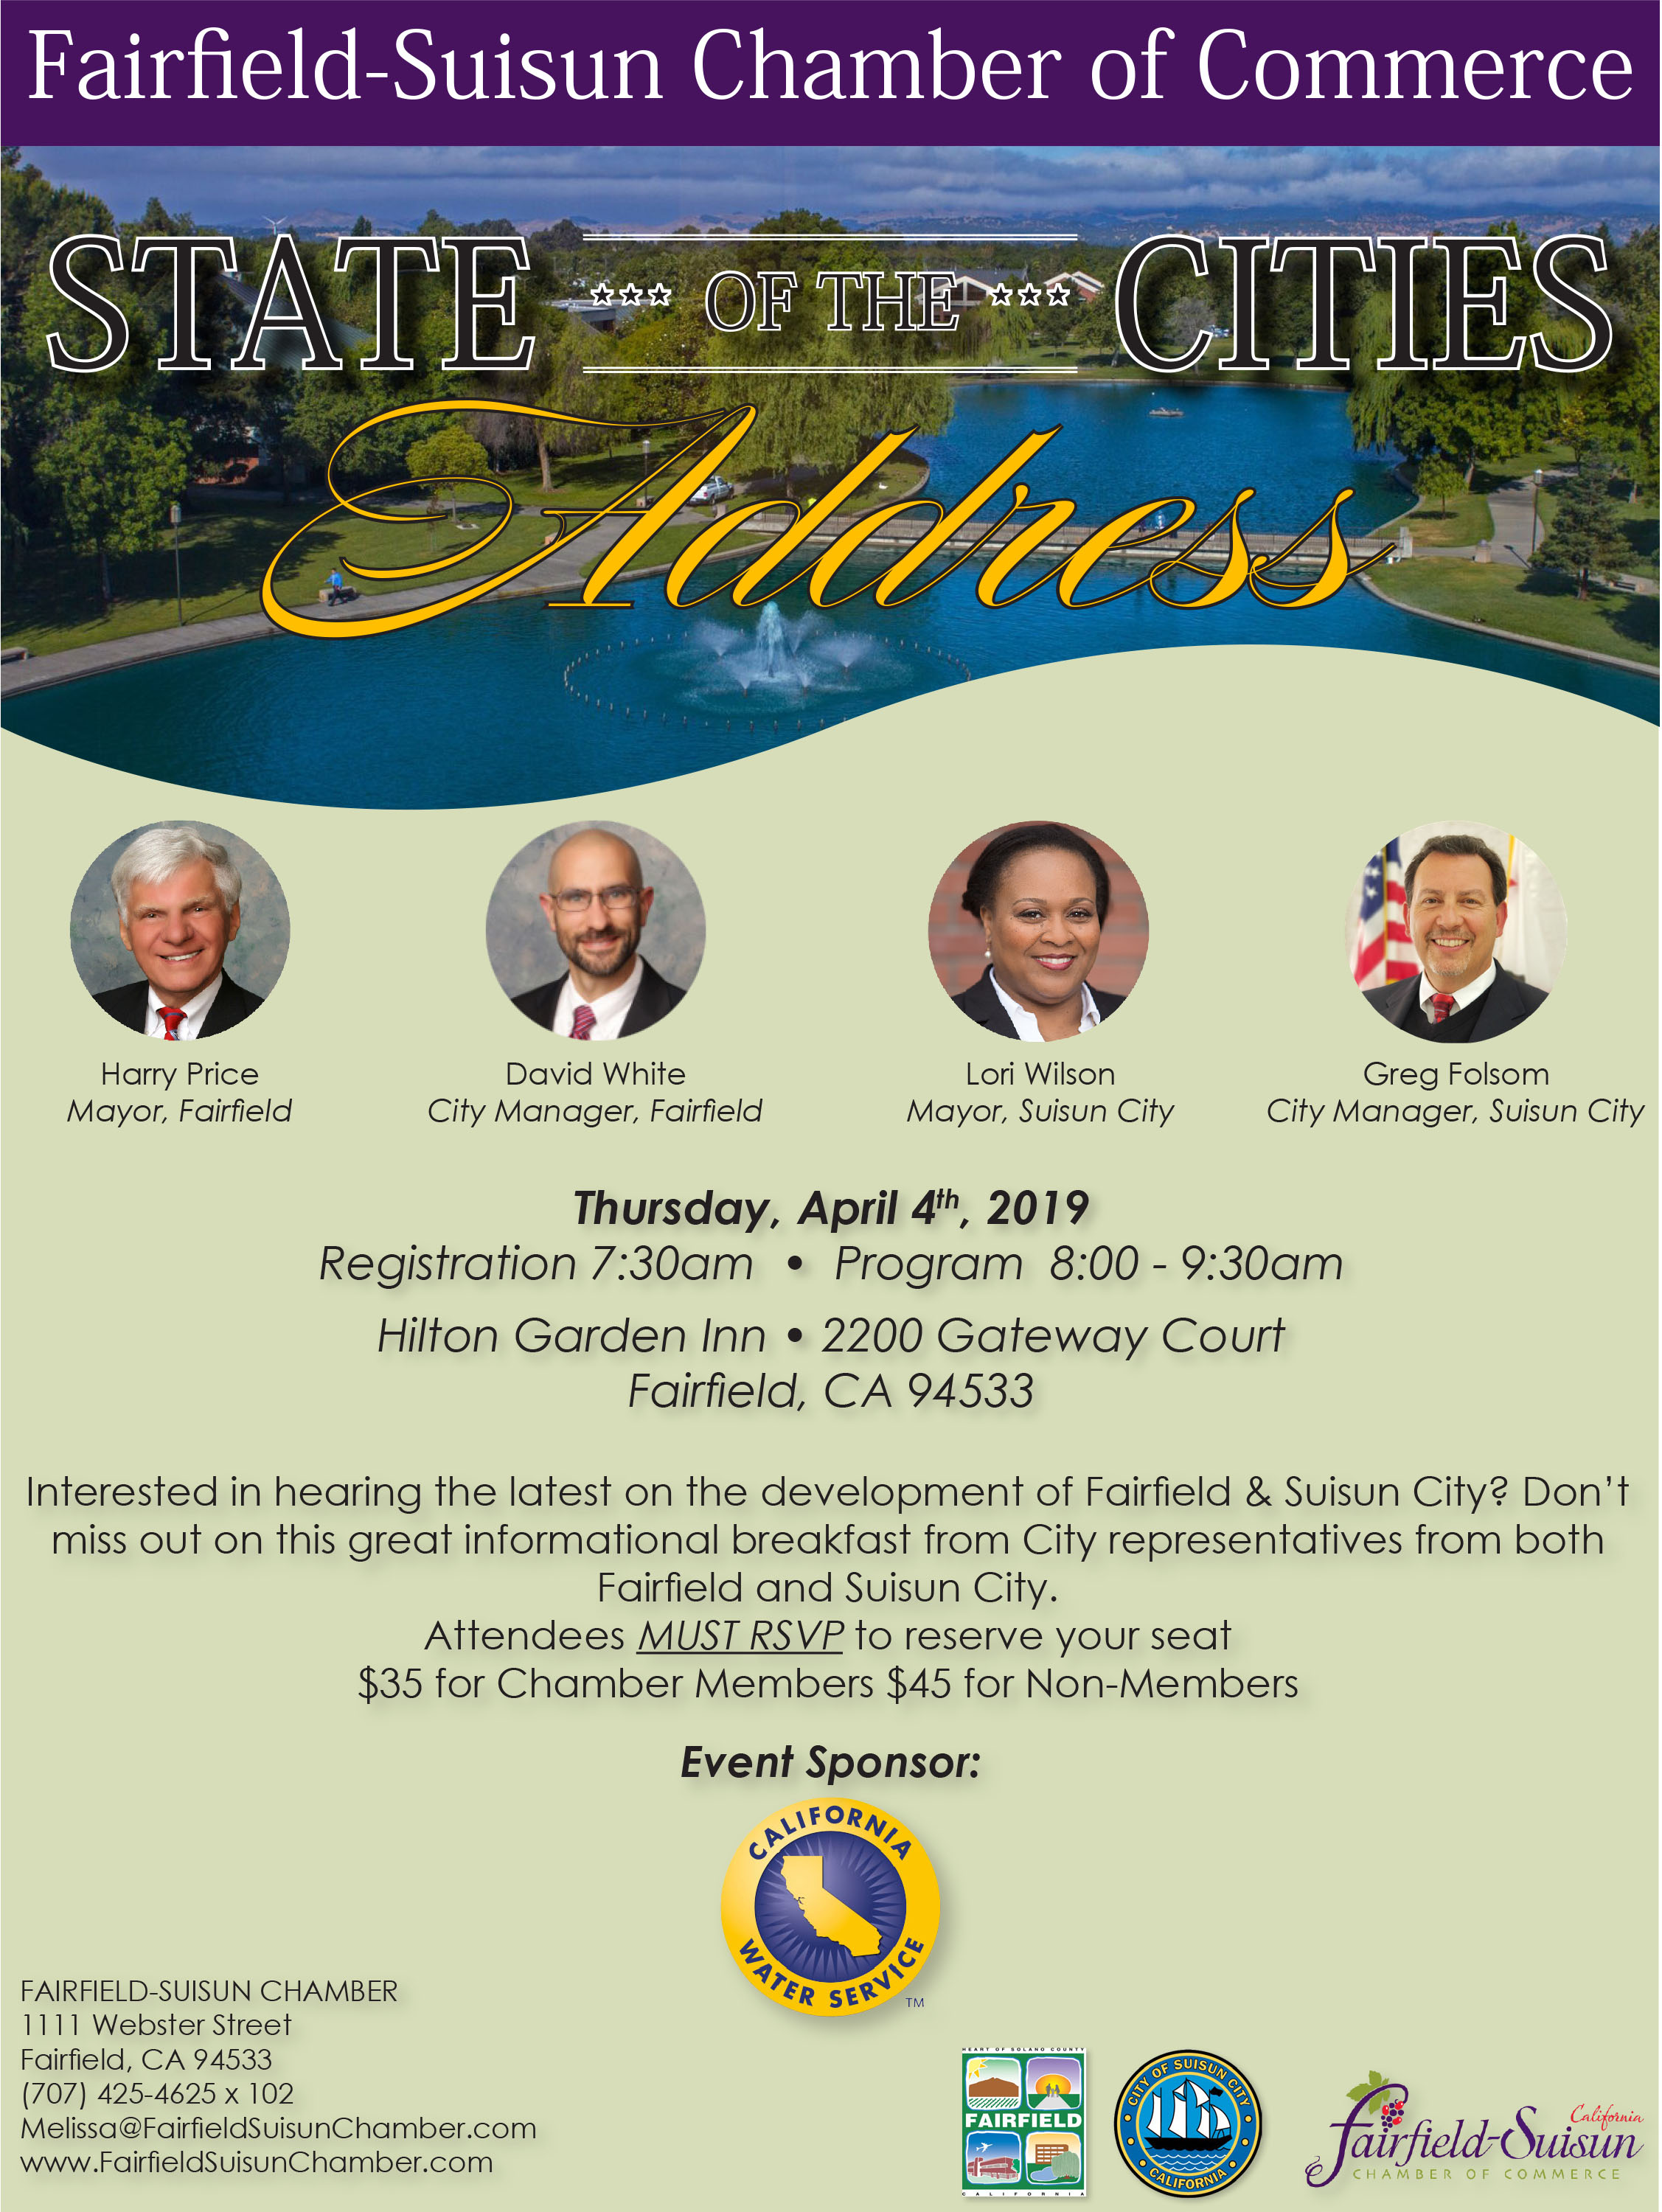 fairfield-suisun-chamber-of-commerce-presents-state-of-the-cities-address-2019